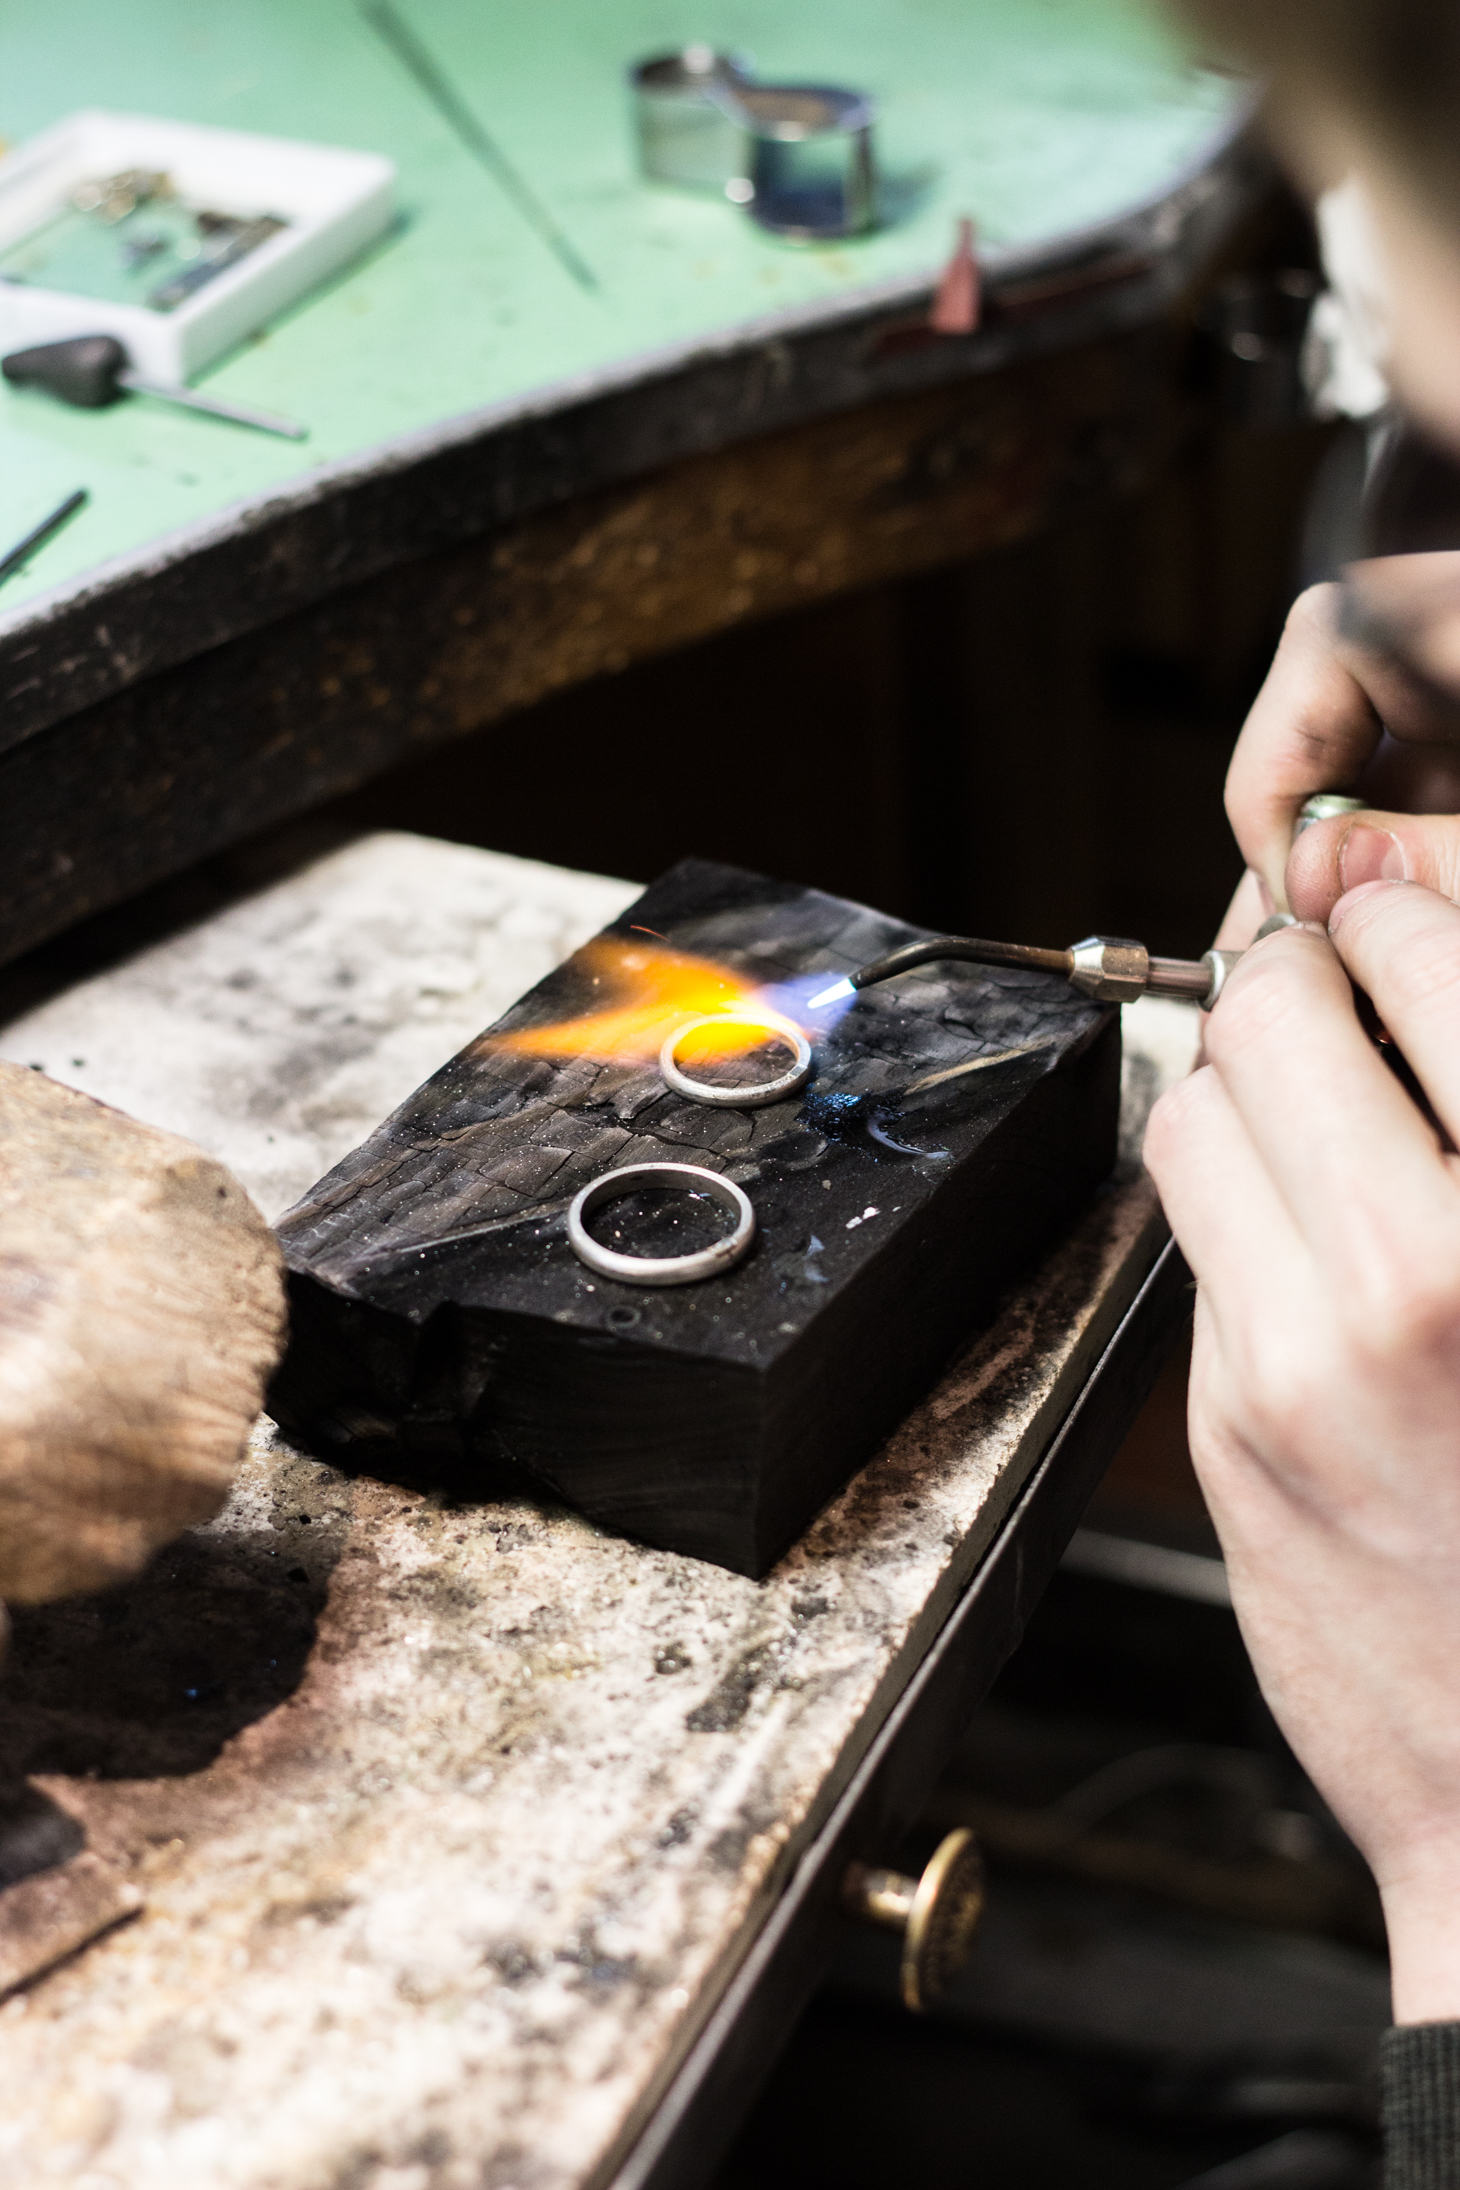 Making our own wedding bands